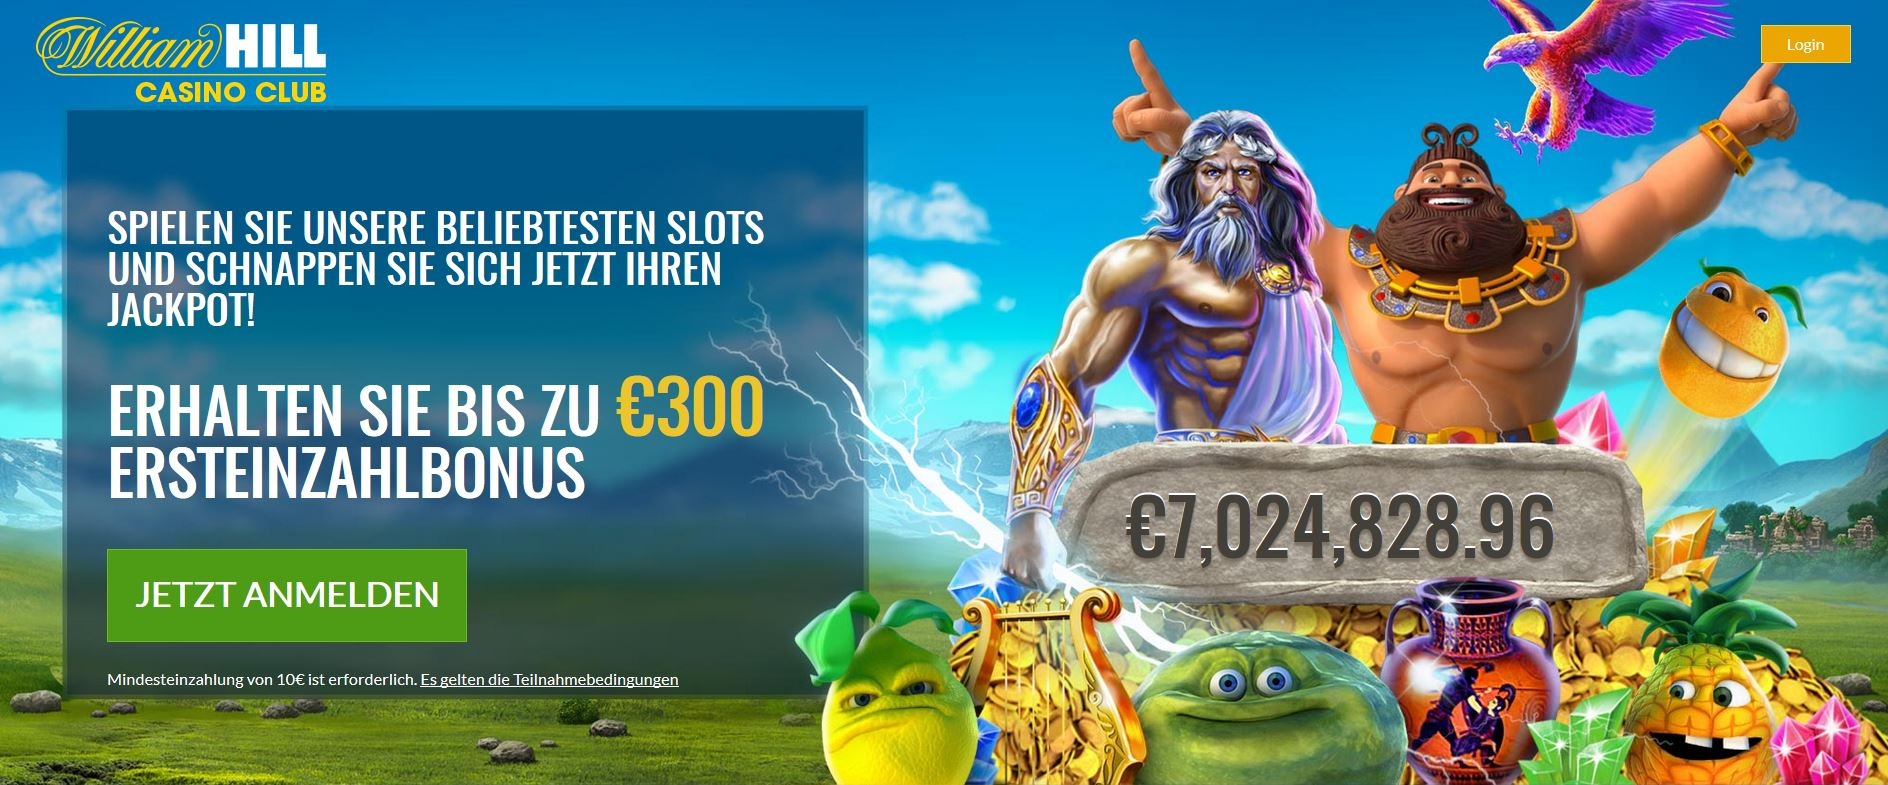 william hill casino com